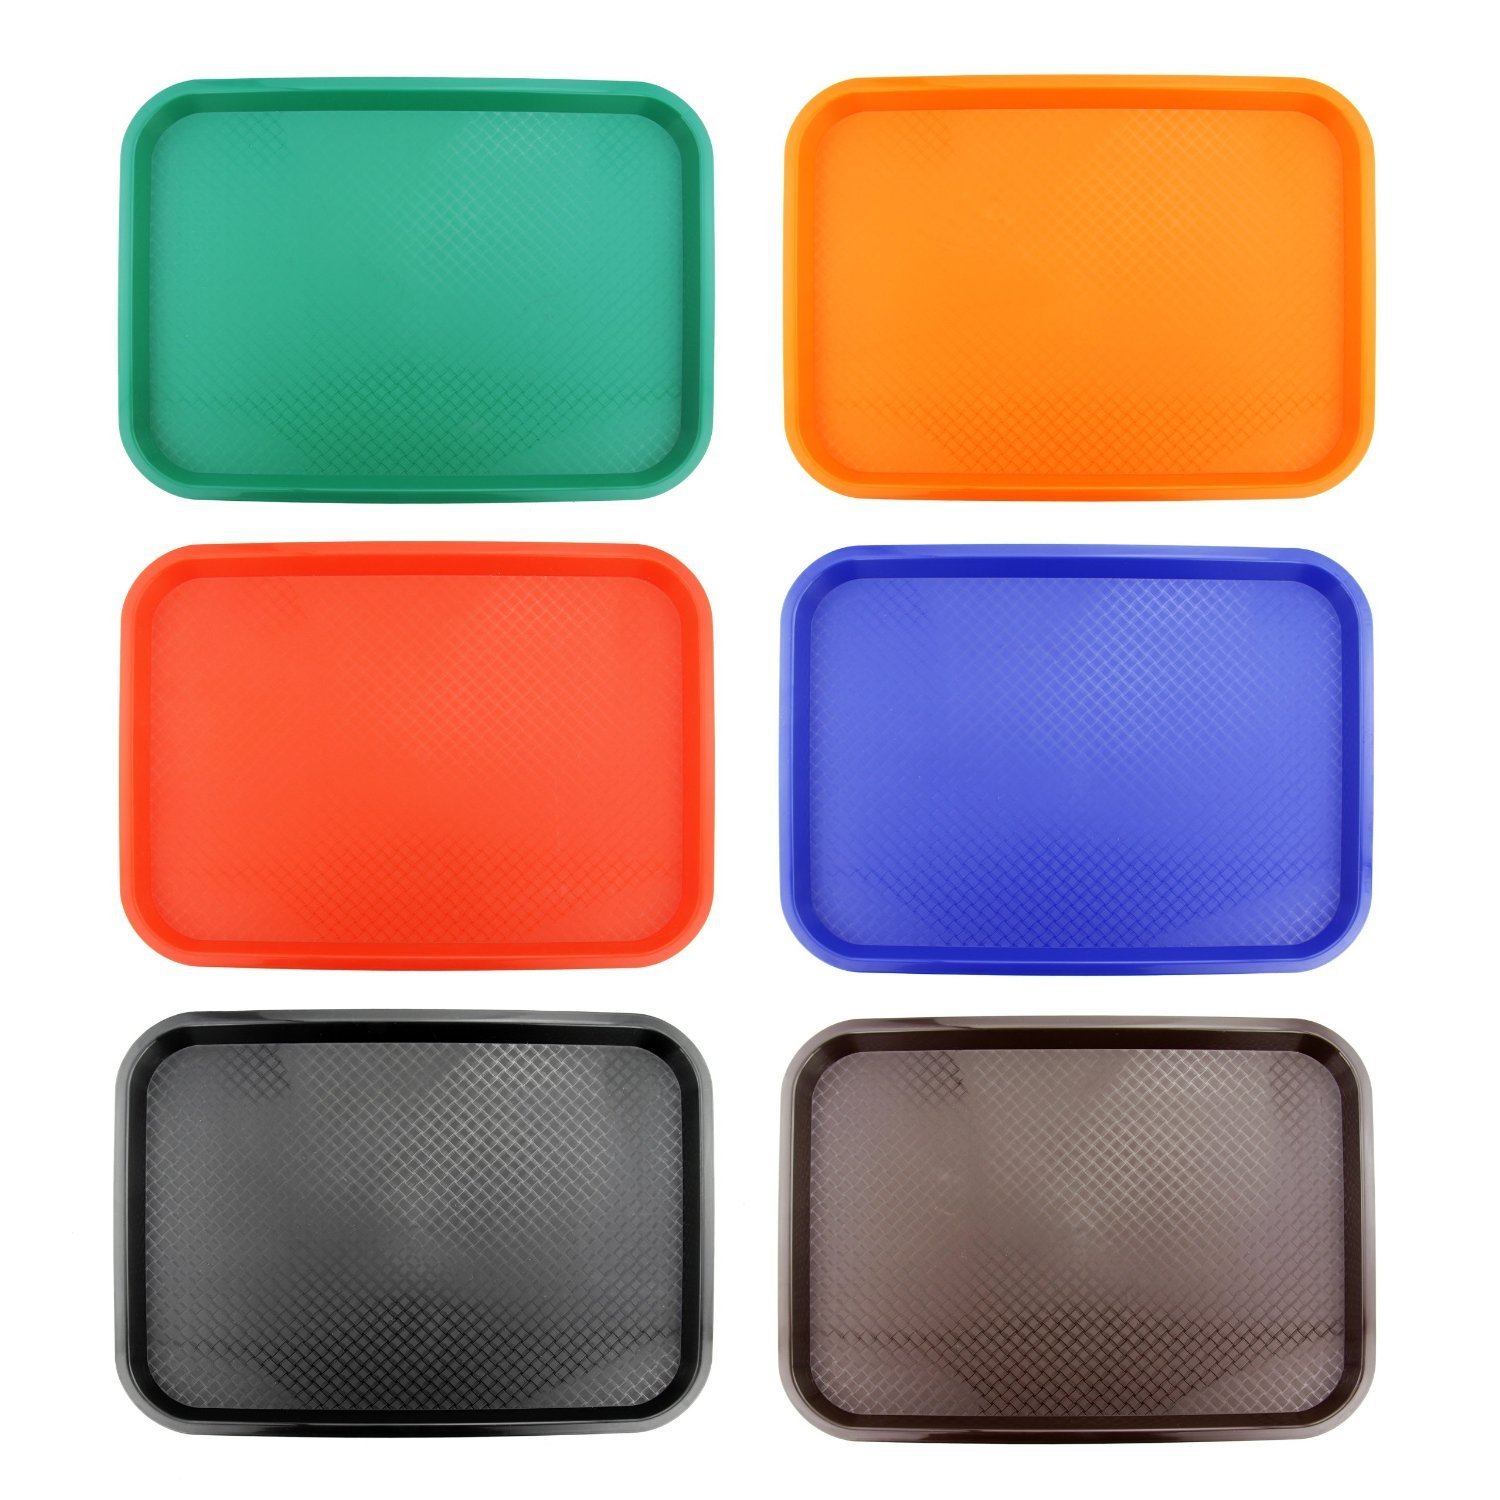 New Star 28010 Fast Food Tray, 12 by 16-Inch, Assorted 6 Colors in Each by New Star Foodservice